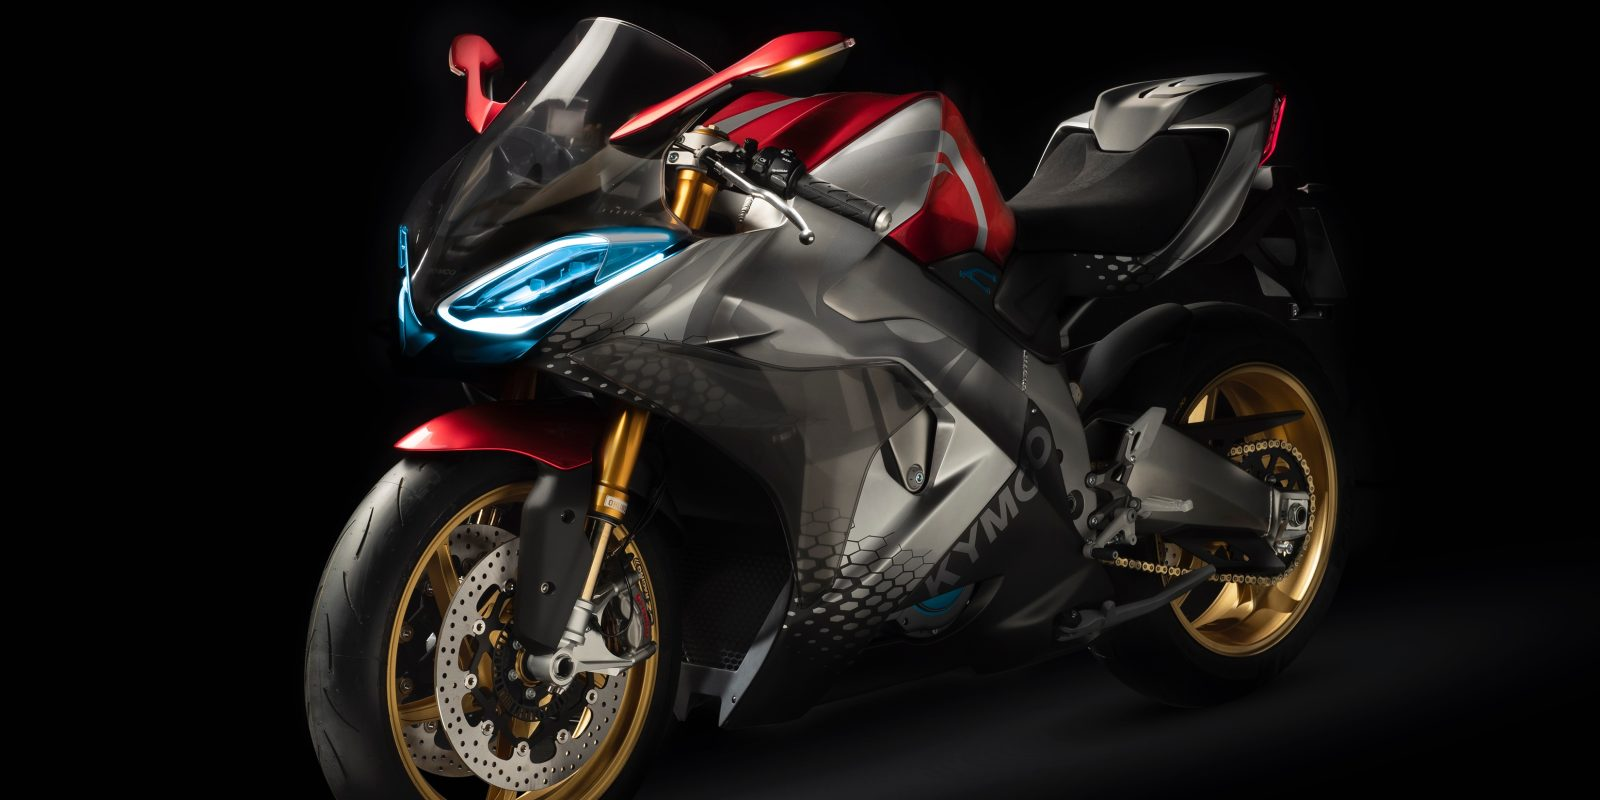 Kymco SuperNEX concept is Kymco's vision for a futuristic superbike